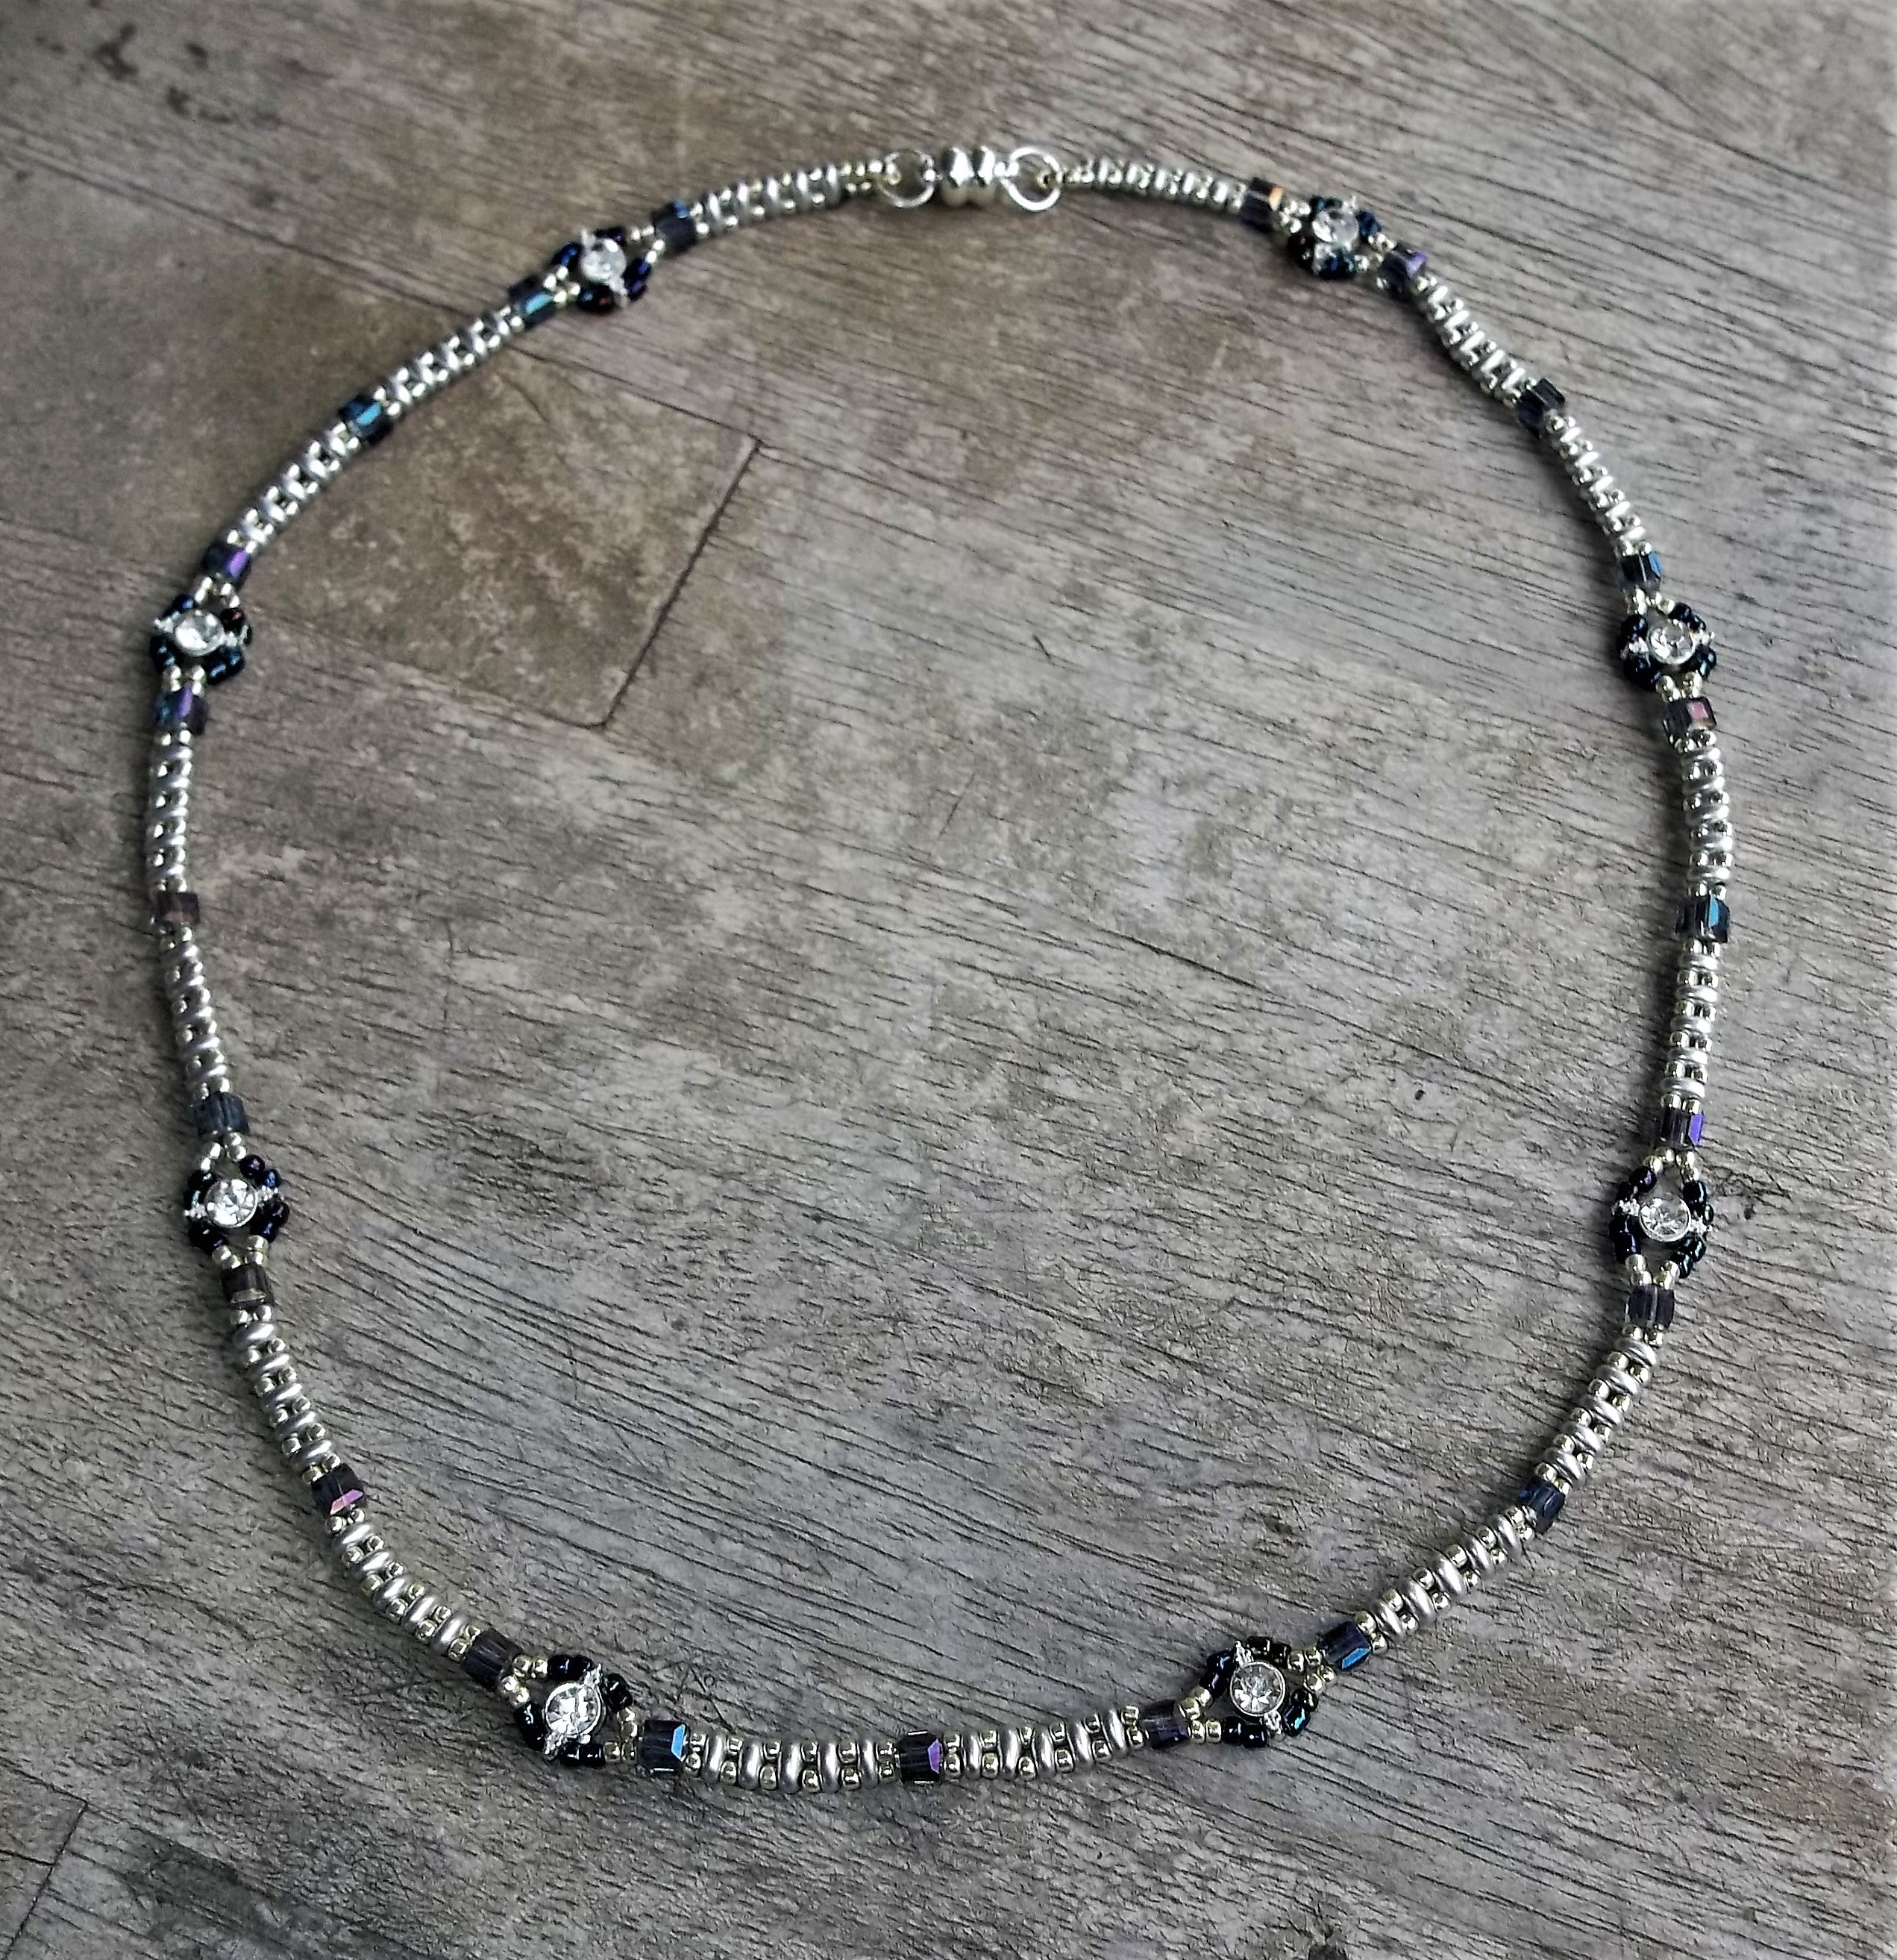 "Plus Size Elegance Beadwoven  Silver Superduo , Square Swarovski Crystal, and Silver Plated CZ Focal Beads 21"" Choker Necklace with Magnetic Clasp"